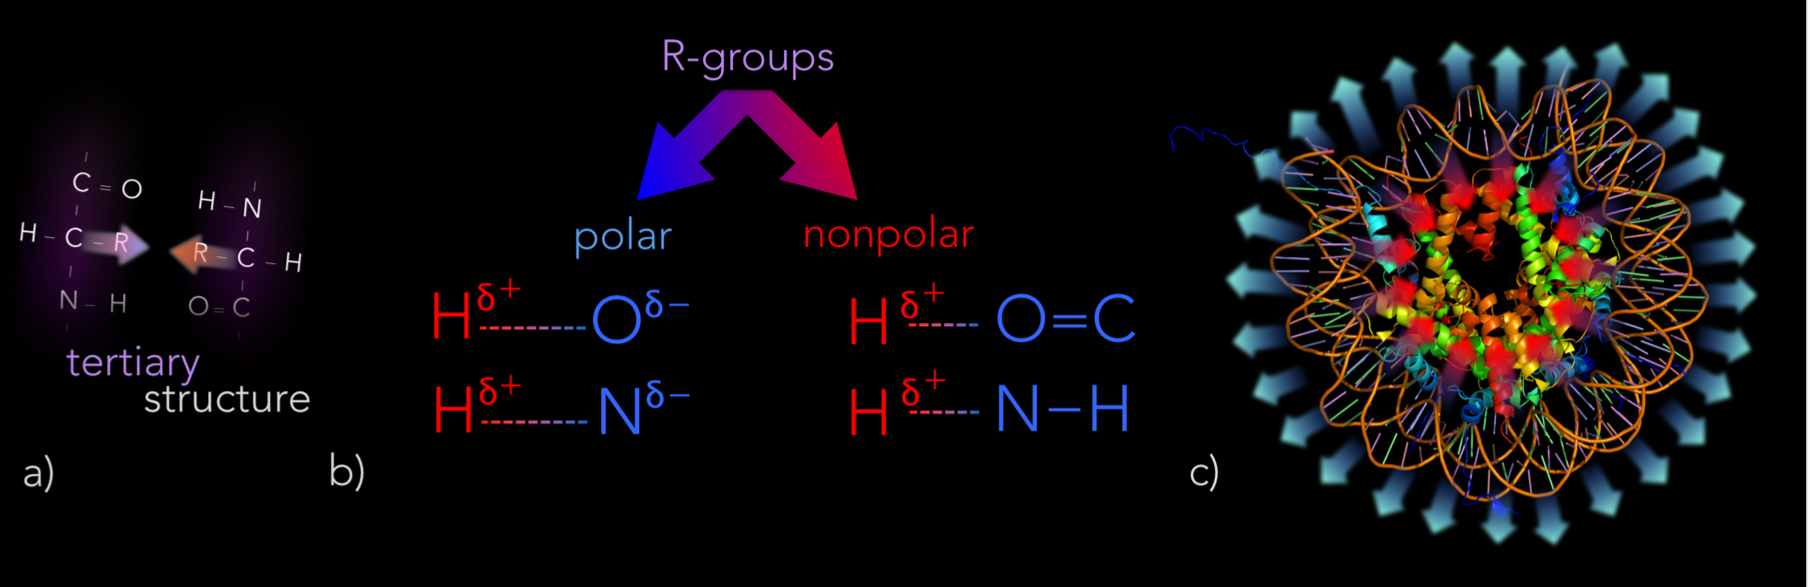 Figure 17.   Tertiary structure of proteins. a) Tertiary structure is affected by how R-groups interact with each other and water. b) Some R-groups are either polar or non-polar. Partially negative atoms (O & N) of polar R-groups form hydrogen bonds with partially positive hydrogens of neighboring R-groups. c) Polar R-groups are hydrophillic, bending towards water. Whereas, non-polar R-groups are hydrophobic and bend away from water.